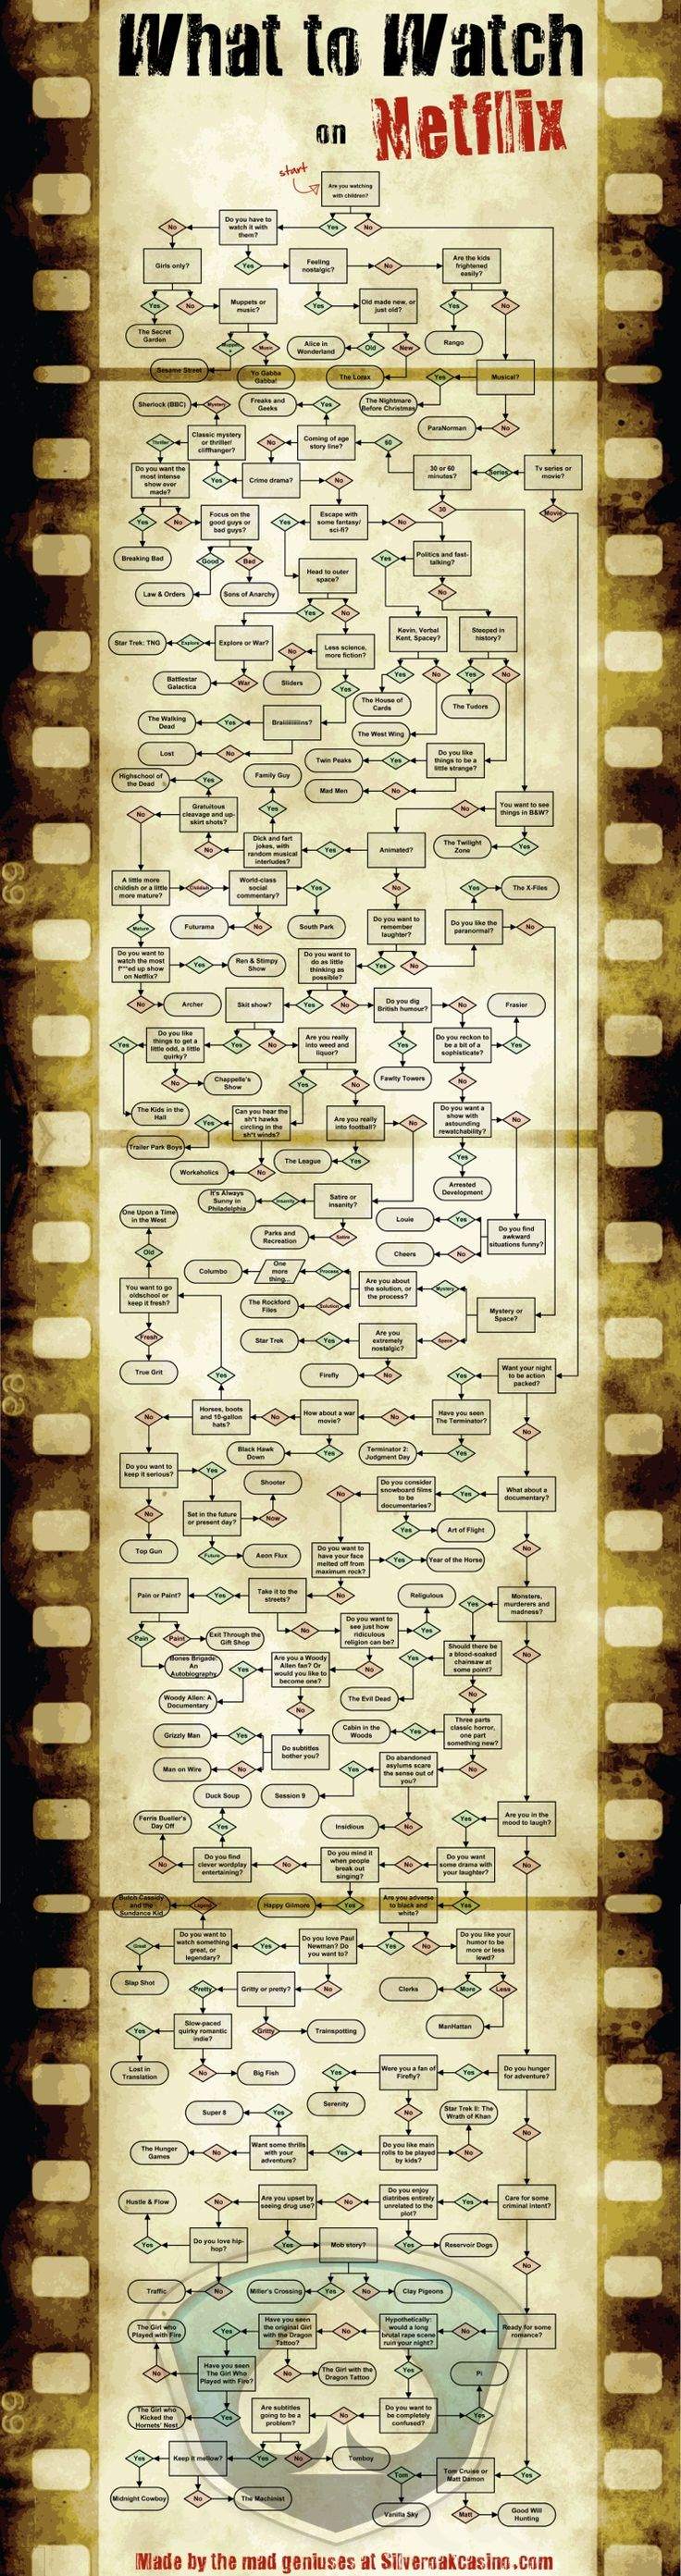 Giant Flowchart Helps You Find Content To Watch On Netflix